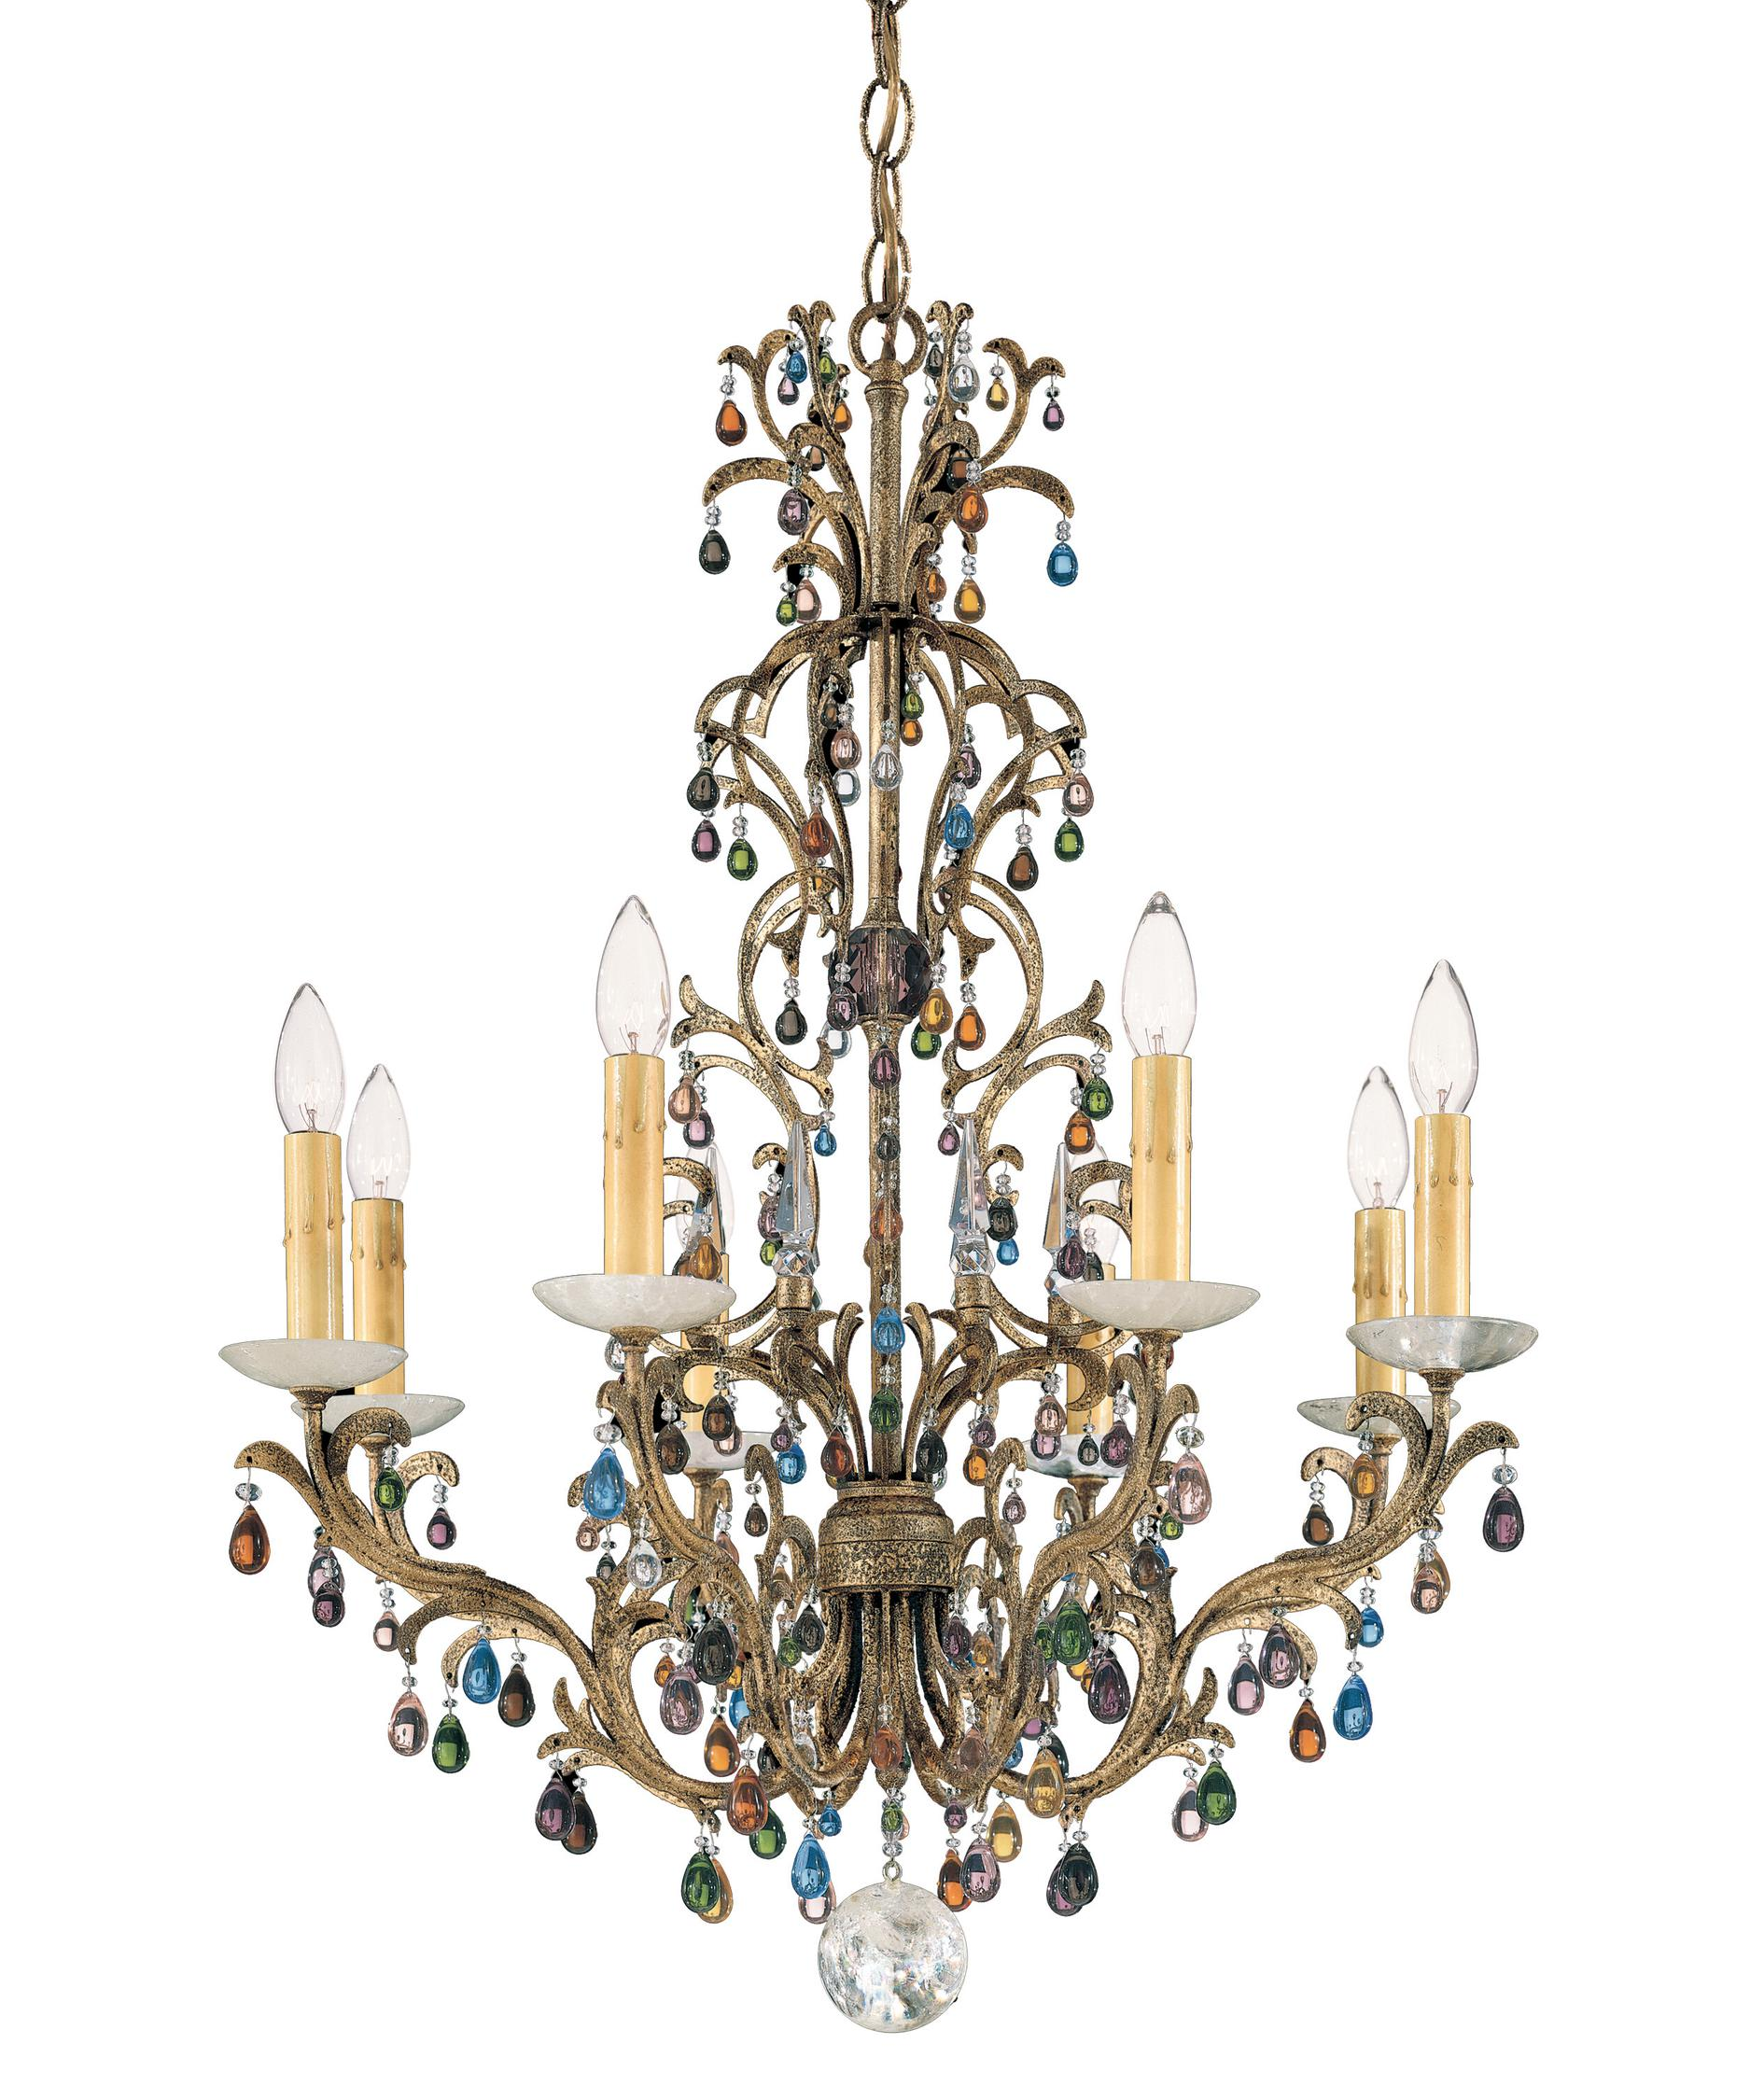 shown in bronze gold finish and jewel tones and rock crystal - Schonbek Chandelier